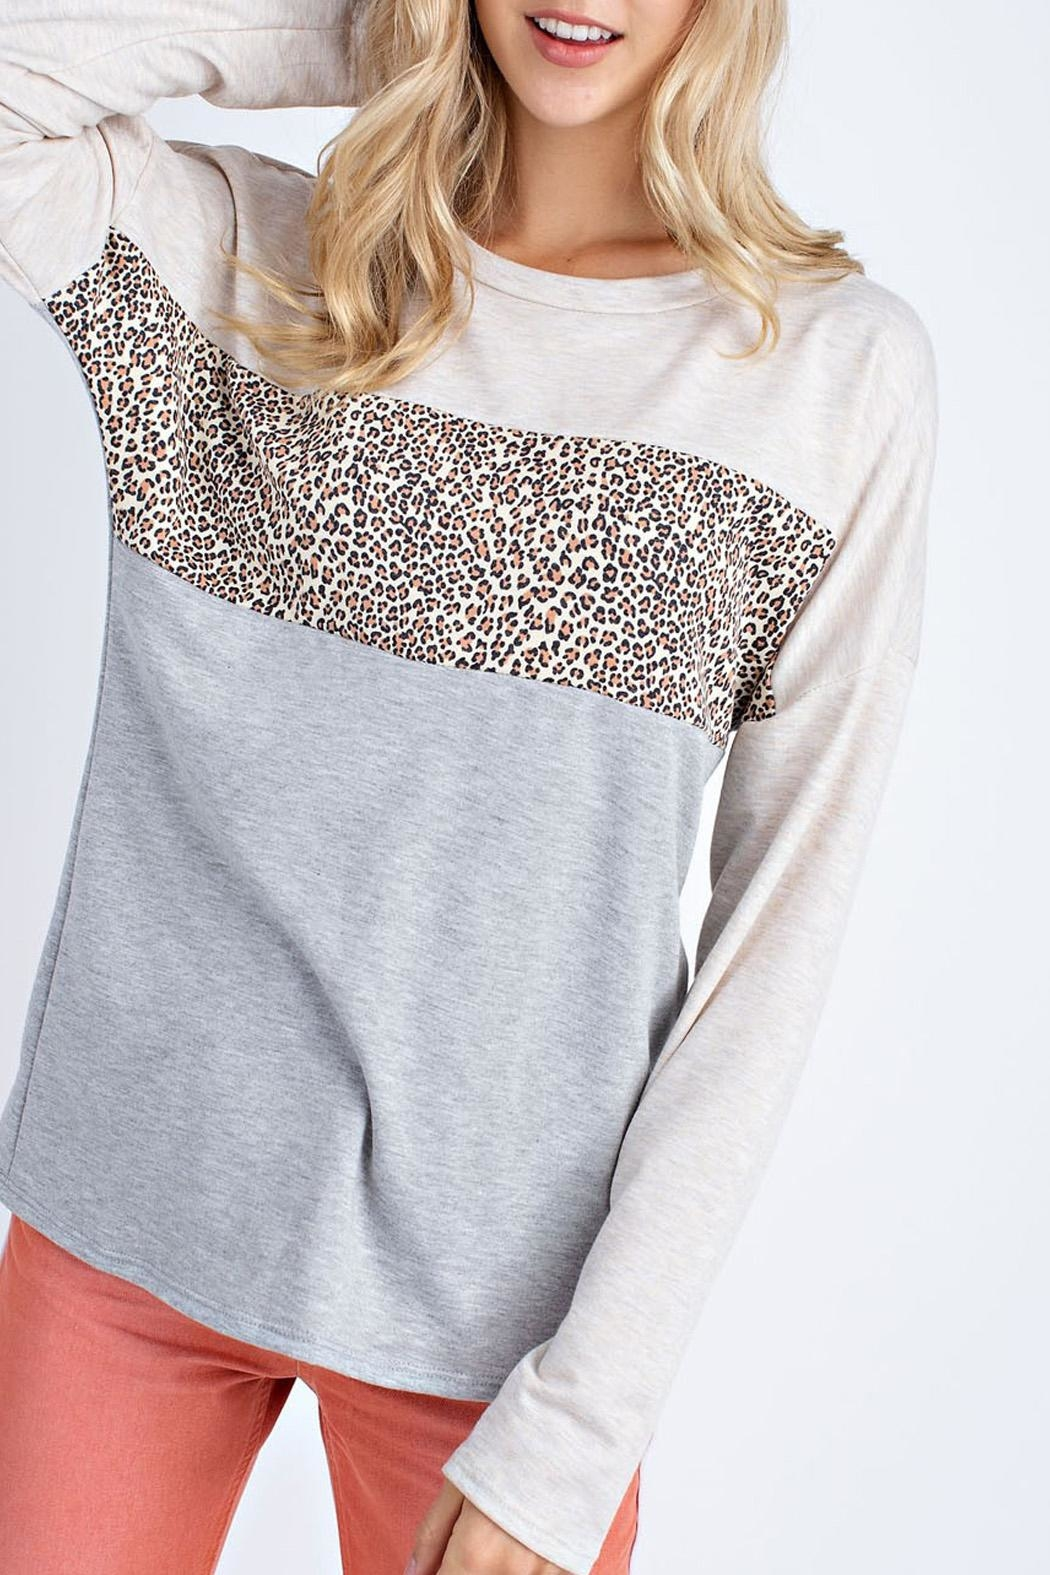 12pm by Mon Ami Oatmeal Leopard Sweater - Main Image